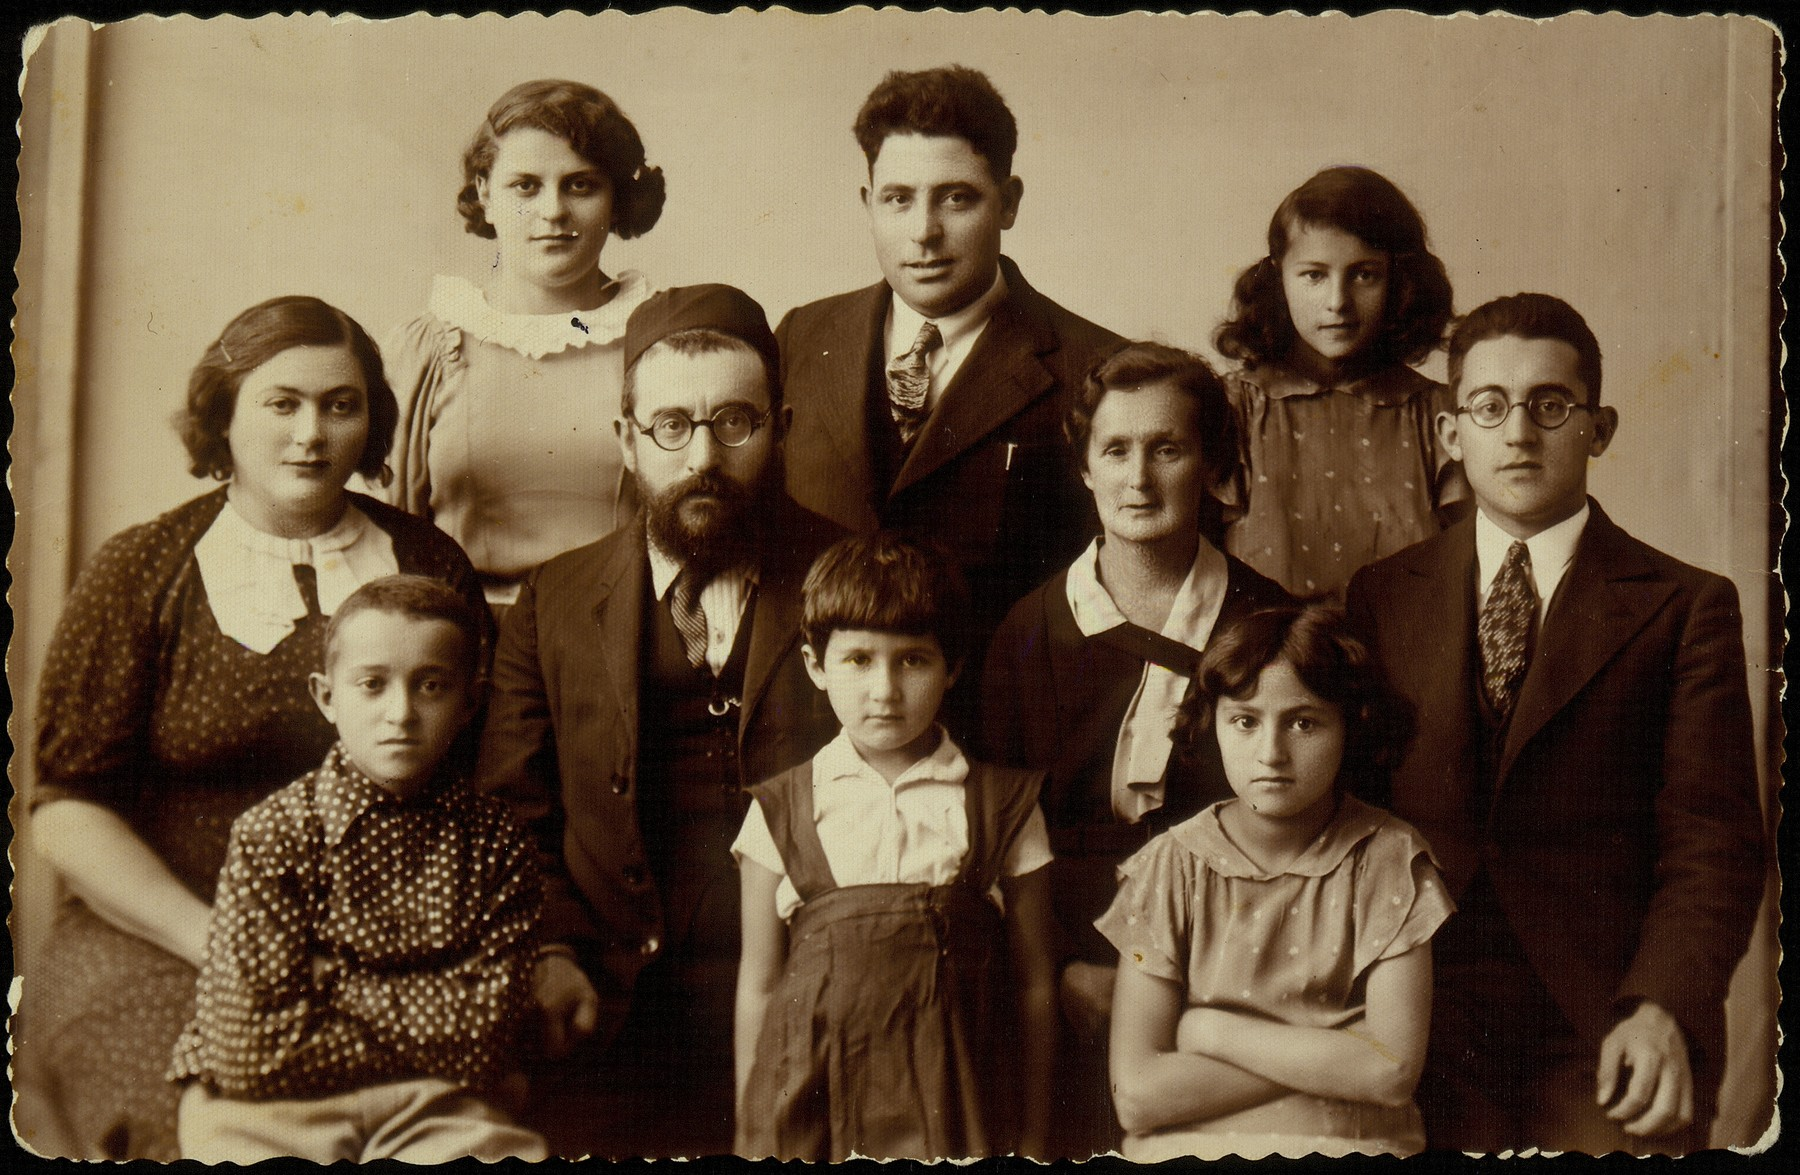 Hinski family portrait.   Rabbi Israel Yossef Hinski (middle row, third from right), was the last shamash of Eisiskes.  Also pictured are (top row, right to left) his daughter Golda-Brahah, his brother Yekutiel, niece Masha Hinski;  (middle row) son Alexander Zisl, Reb Israel's wife Taibe-Eidl (nee Kabacznik),  and his sister-in-law Esther Hinski; (bottom) daughter Hayya-Sheine, niece Golda Koppelman, and son Avraham-Yaakov.   Alexander Zisl immigrated to Palestine in 1939. Hayya-Sheine died a natural death during the summer of 1941.   All the others were murdered by the Germans during the September 1941 killing action in Eisiskes and elsewhere.